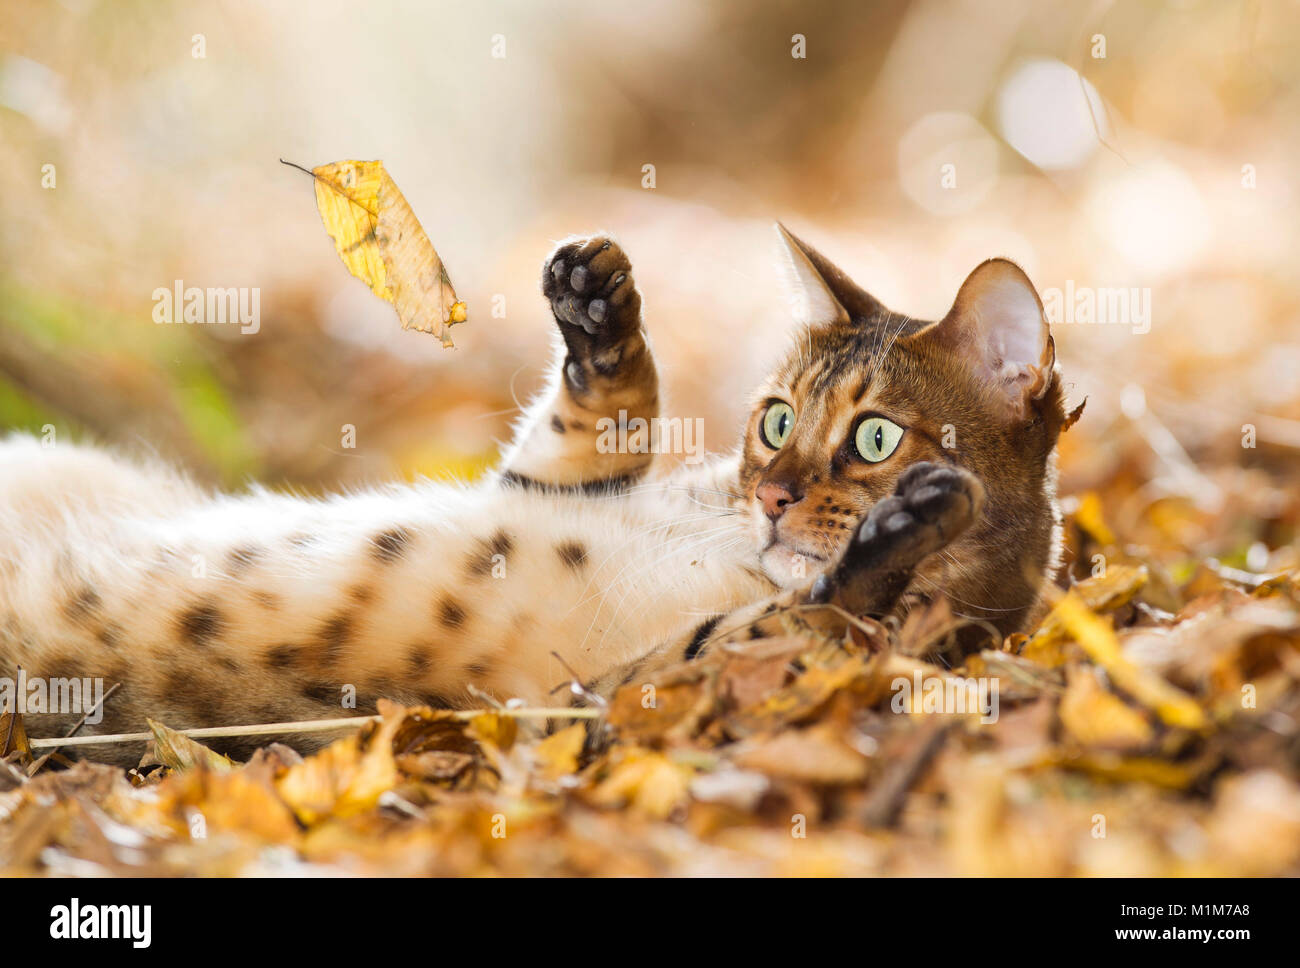 Bengal cat lying in leaf litter, playing with falling leaf. Germany - Stock Image